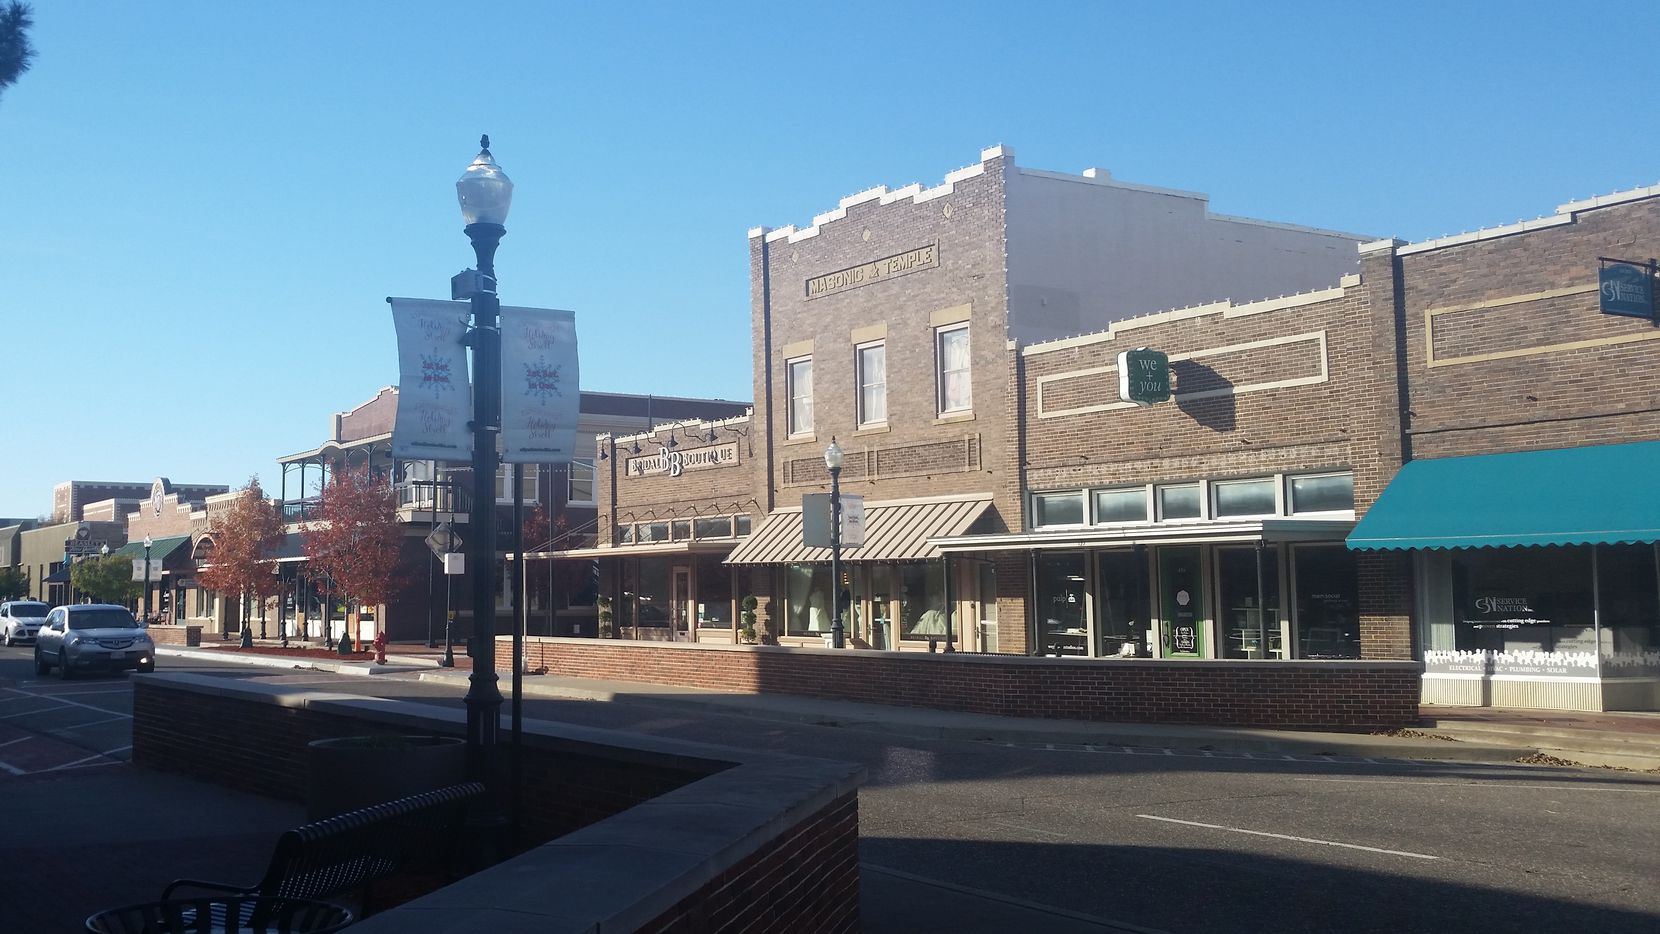 Lewisville's historic Old Town district has buildings dating to the early 20th century.